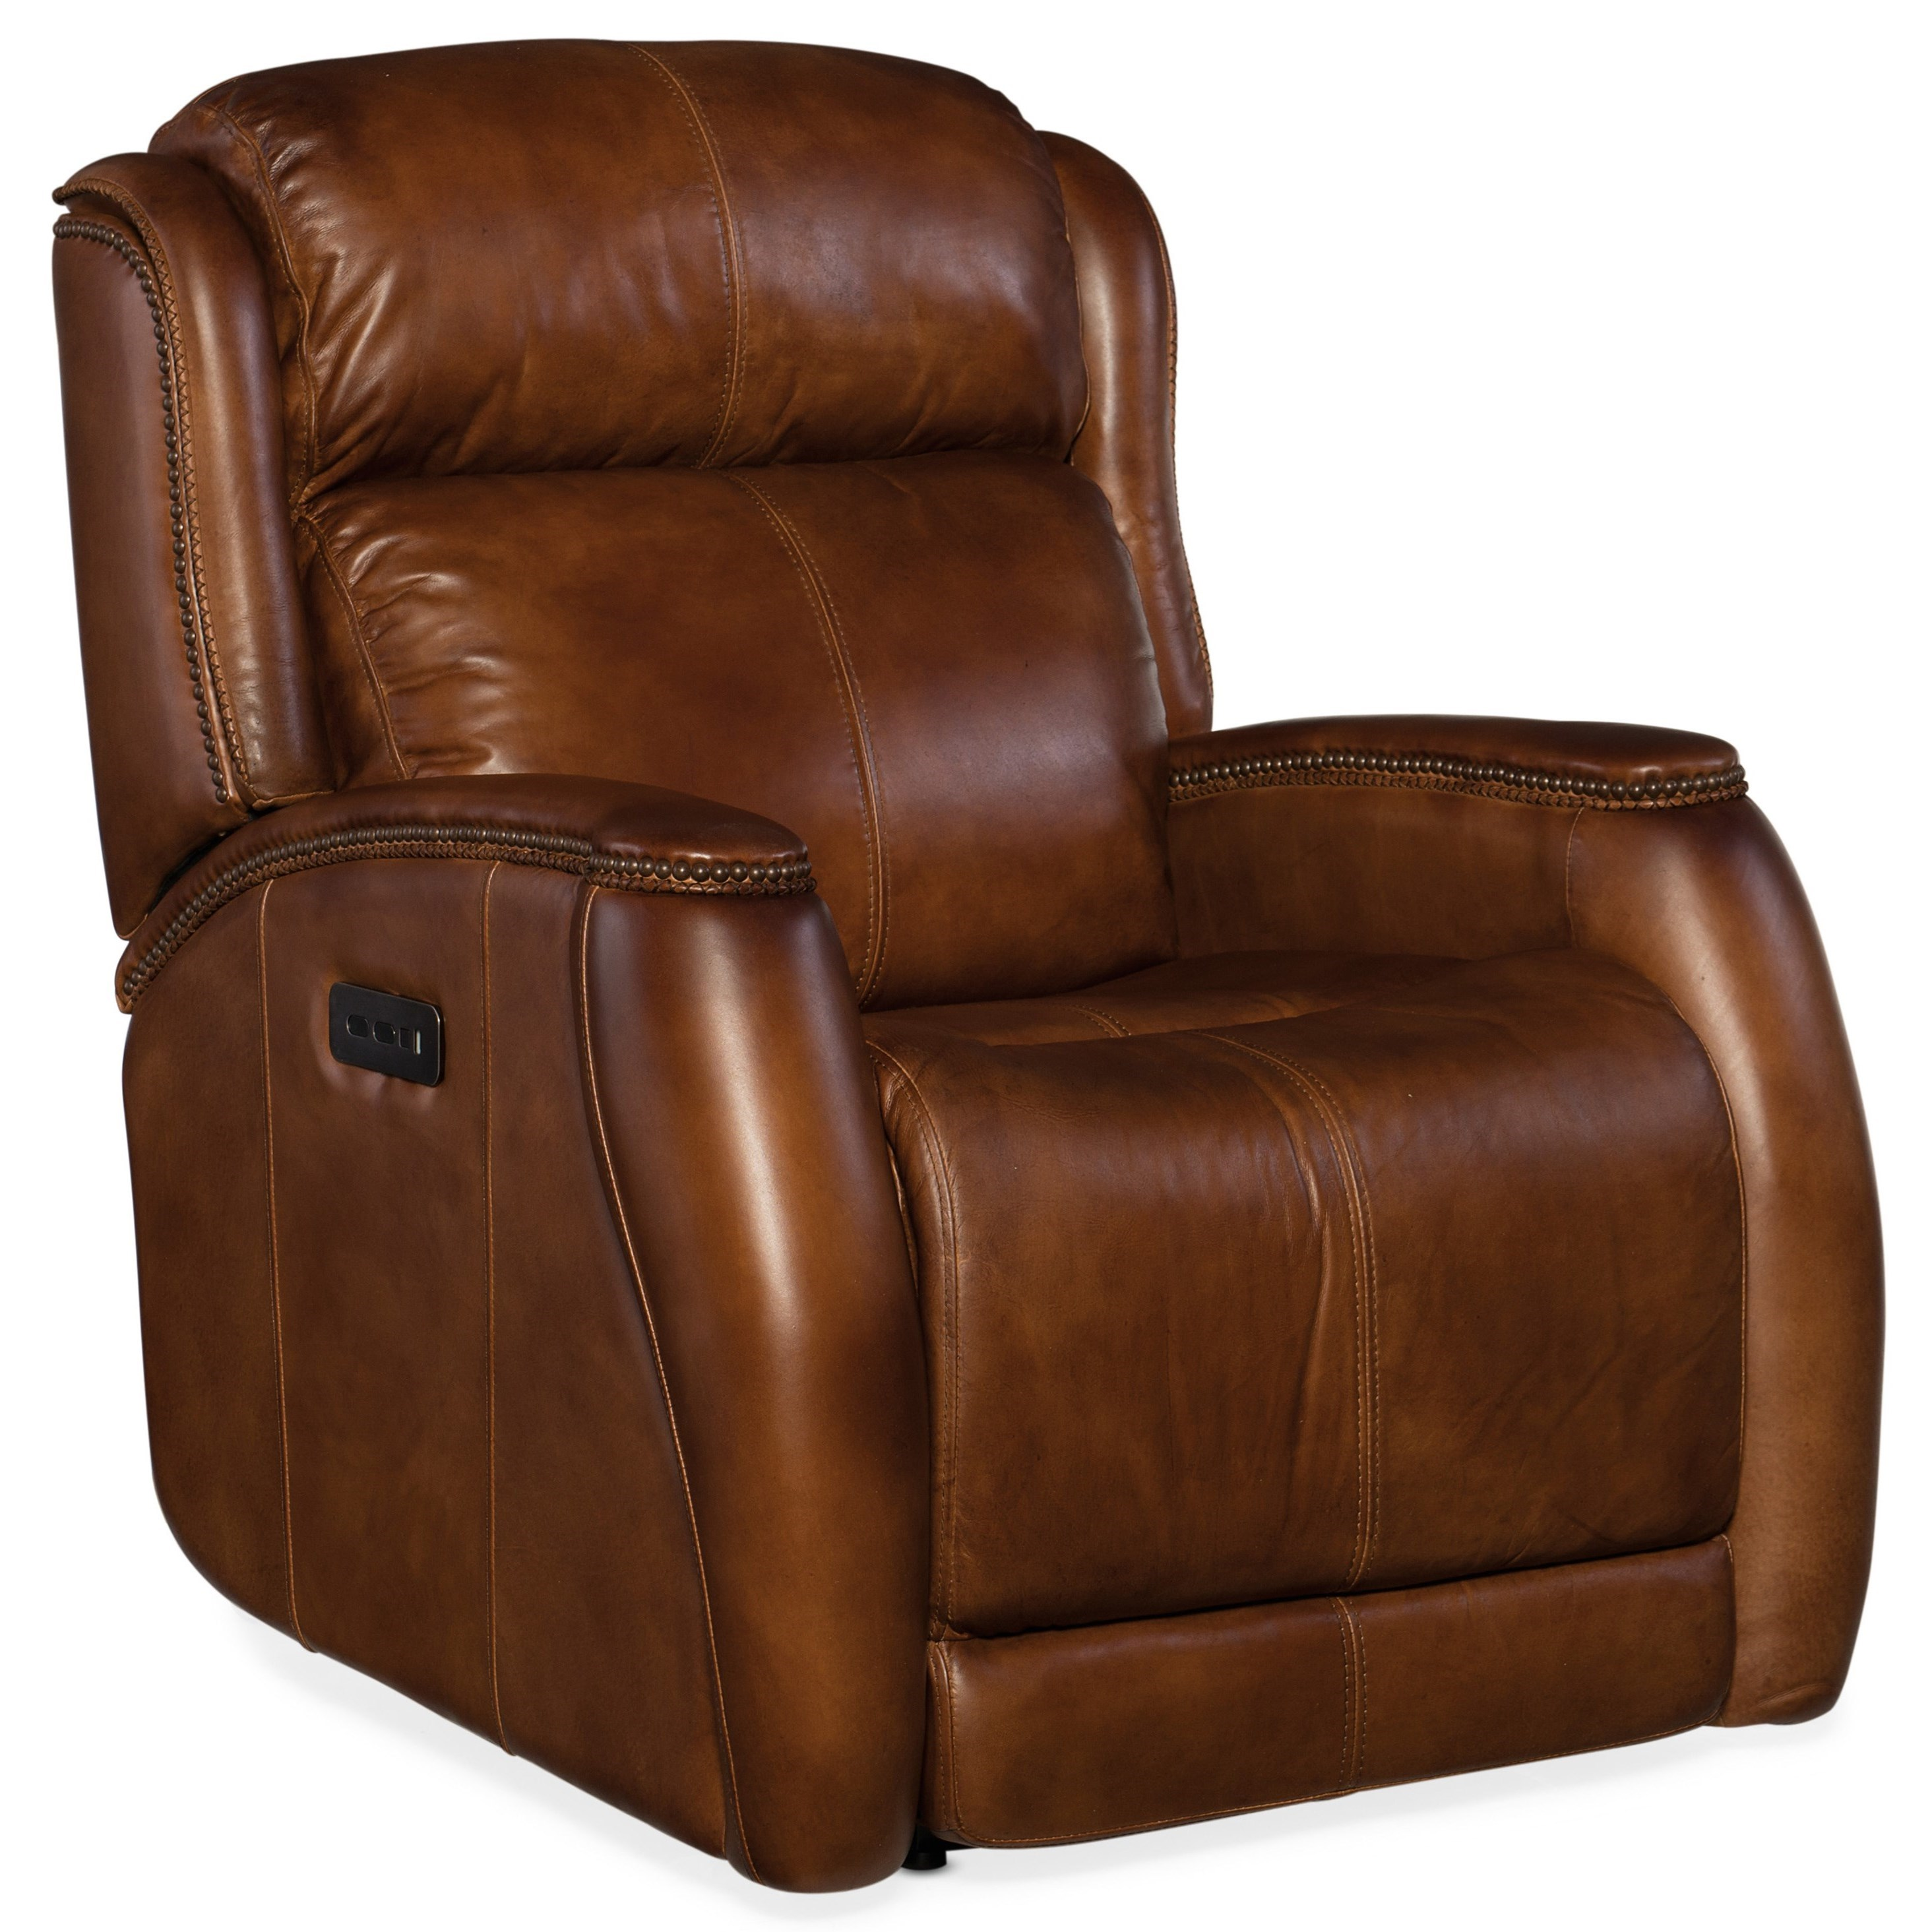 Emerson Power Recliner with Power Headrest by Hooker Furniture at Alison Craig Home Furnishings